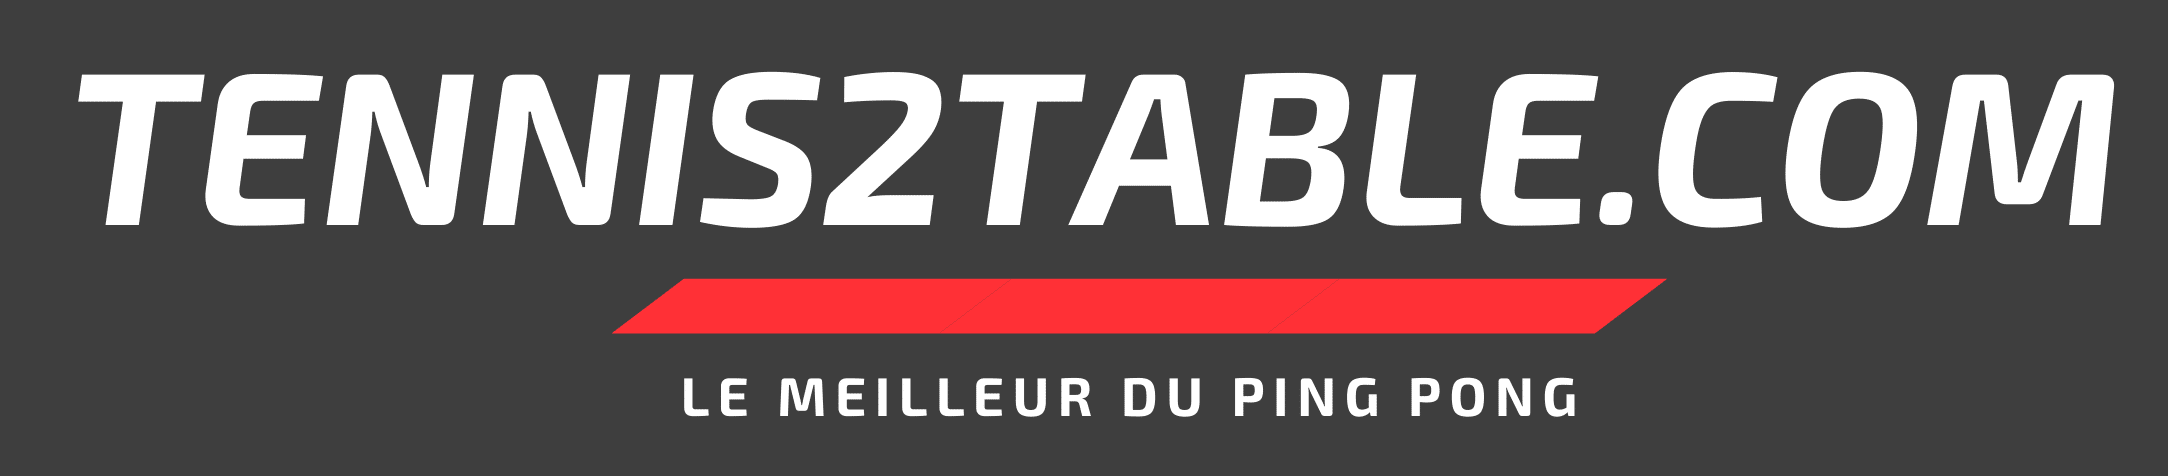 Tennis2table.com le meilleur du Ping Pong et du tennis de table